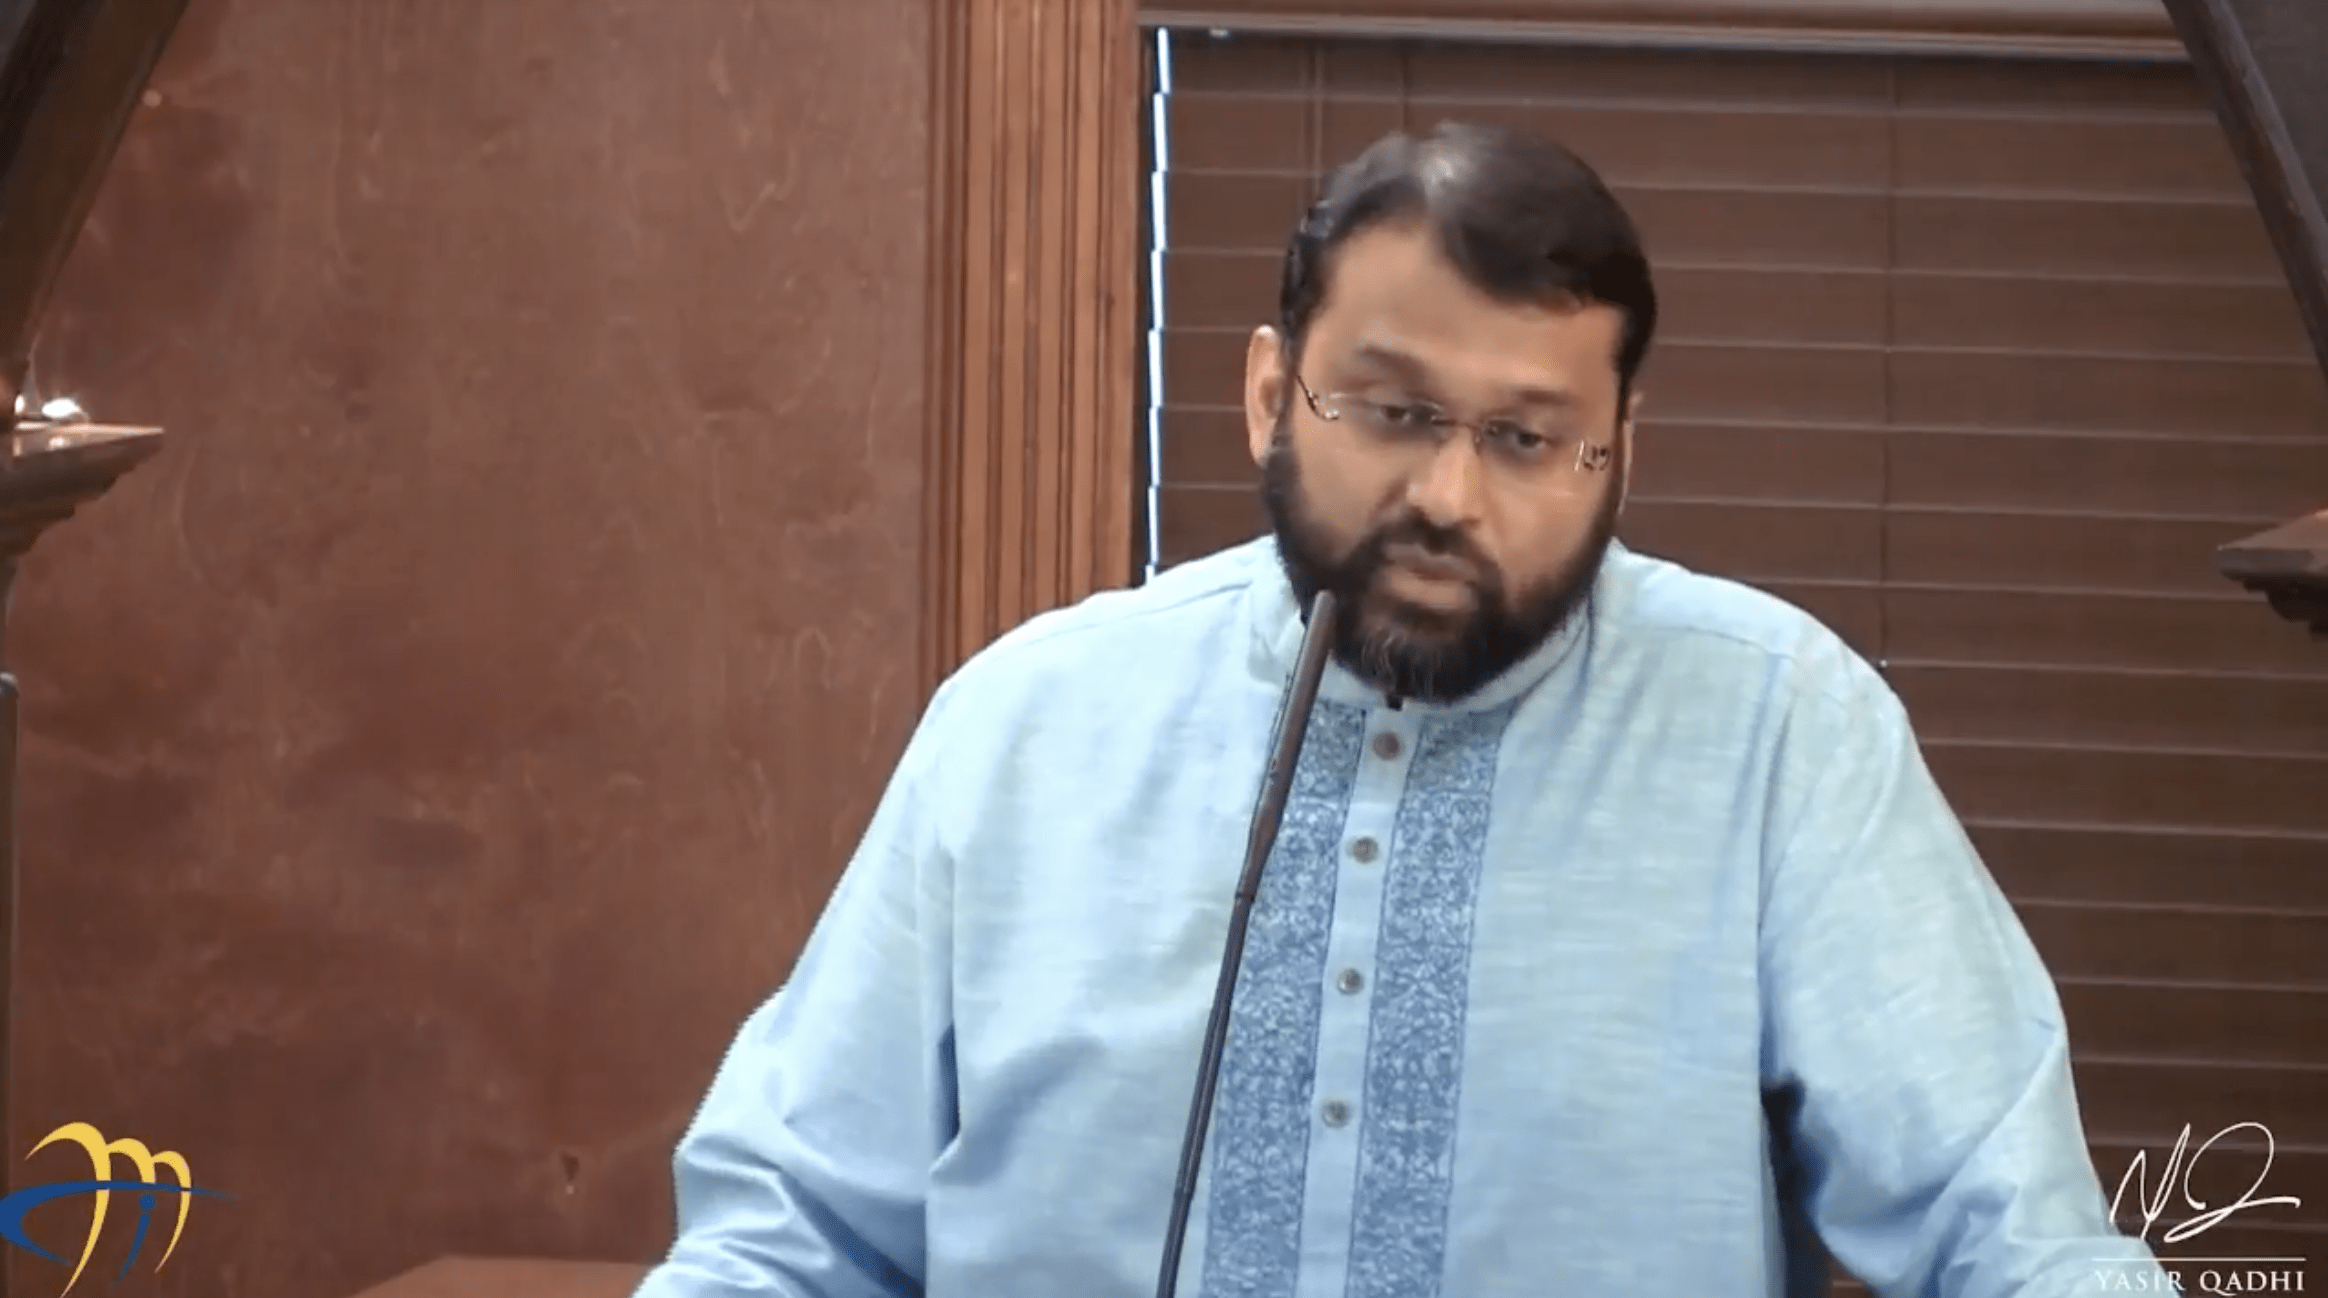 Yasir Qadhi – The #MeToo Movement & Sexual Crimes from an Islamic Perspective